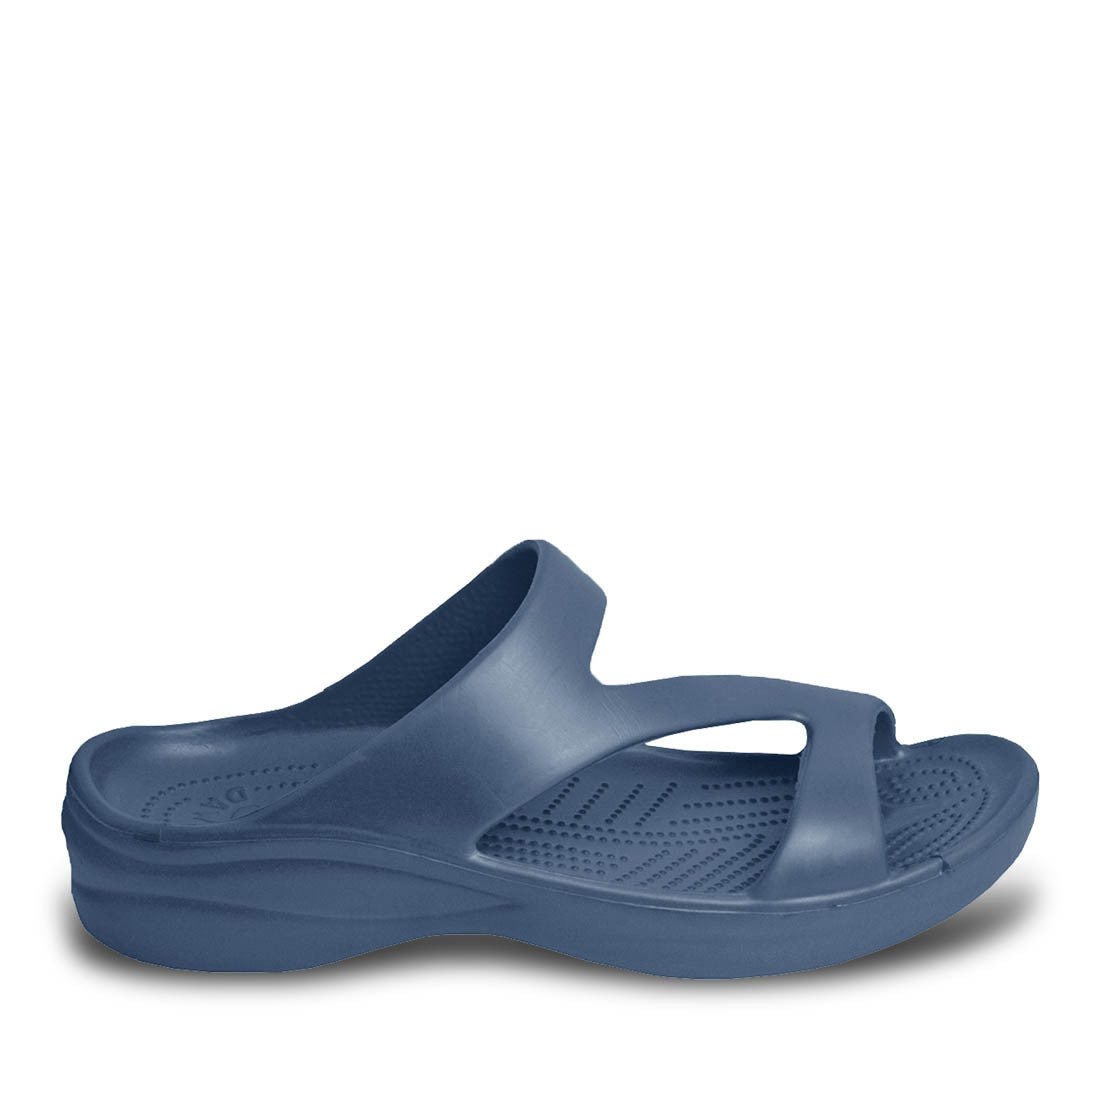 Image of Women's Z Sandals - Navy